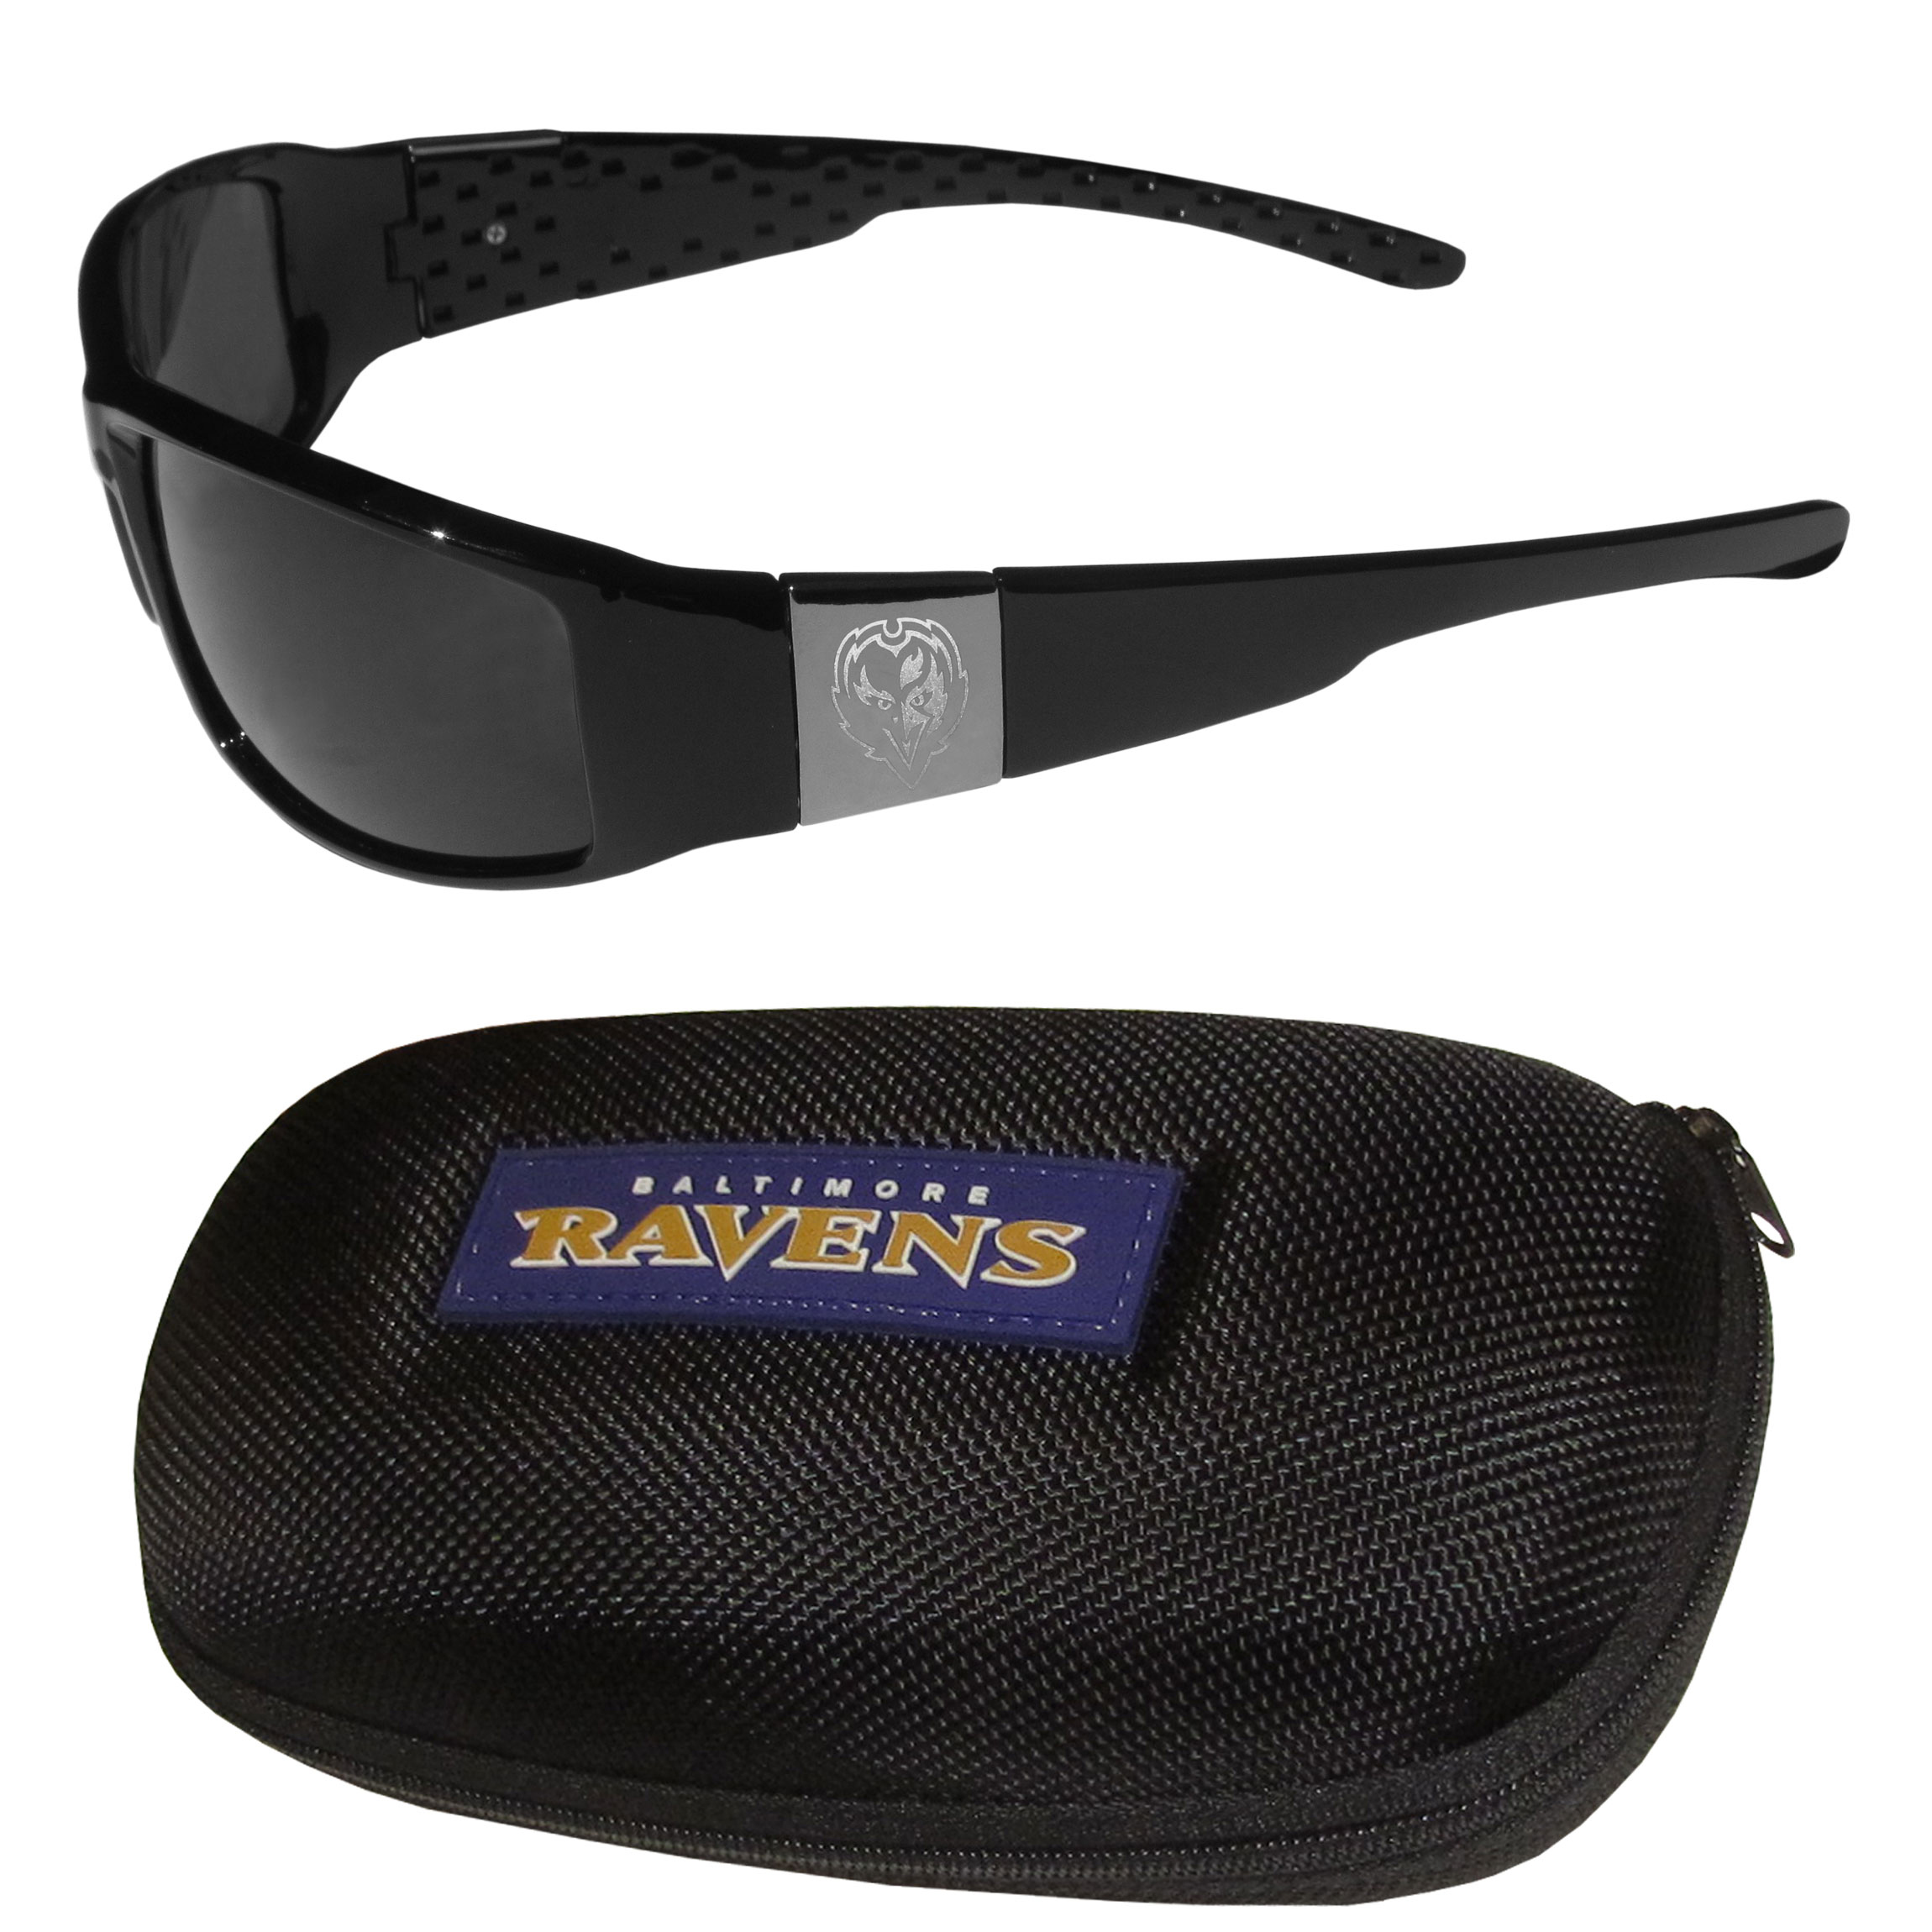 Baltimore Ravens Chrome Wrap Sunglasses and Zippered Carrying Case - This set includes our sleek and stylish Baltimore Ravens chrome wrap sunglasses and our hard shell, zippered carrying case. The sunglasses feature etched team logos on each arm and 100% UVA/UVB protection. The case features a large and colorful team emblem.